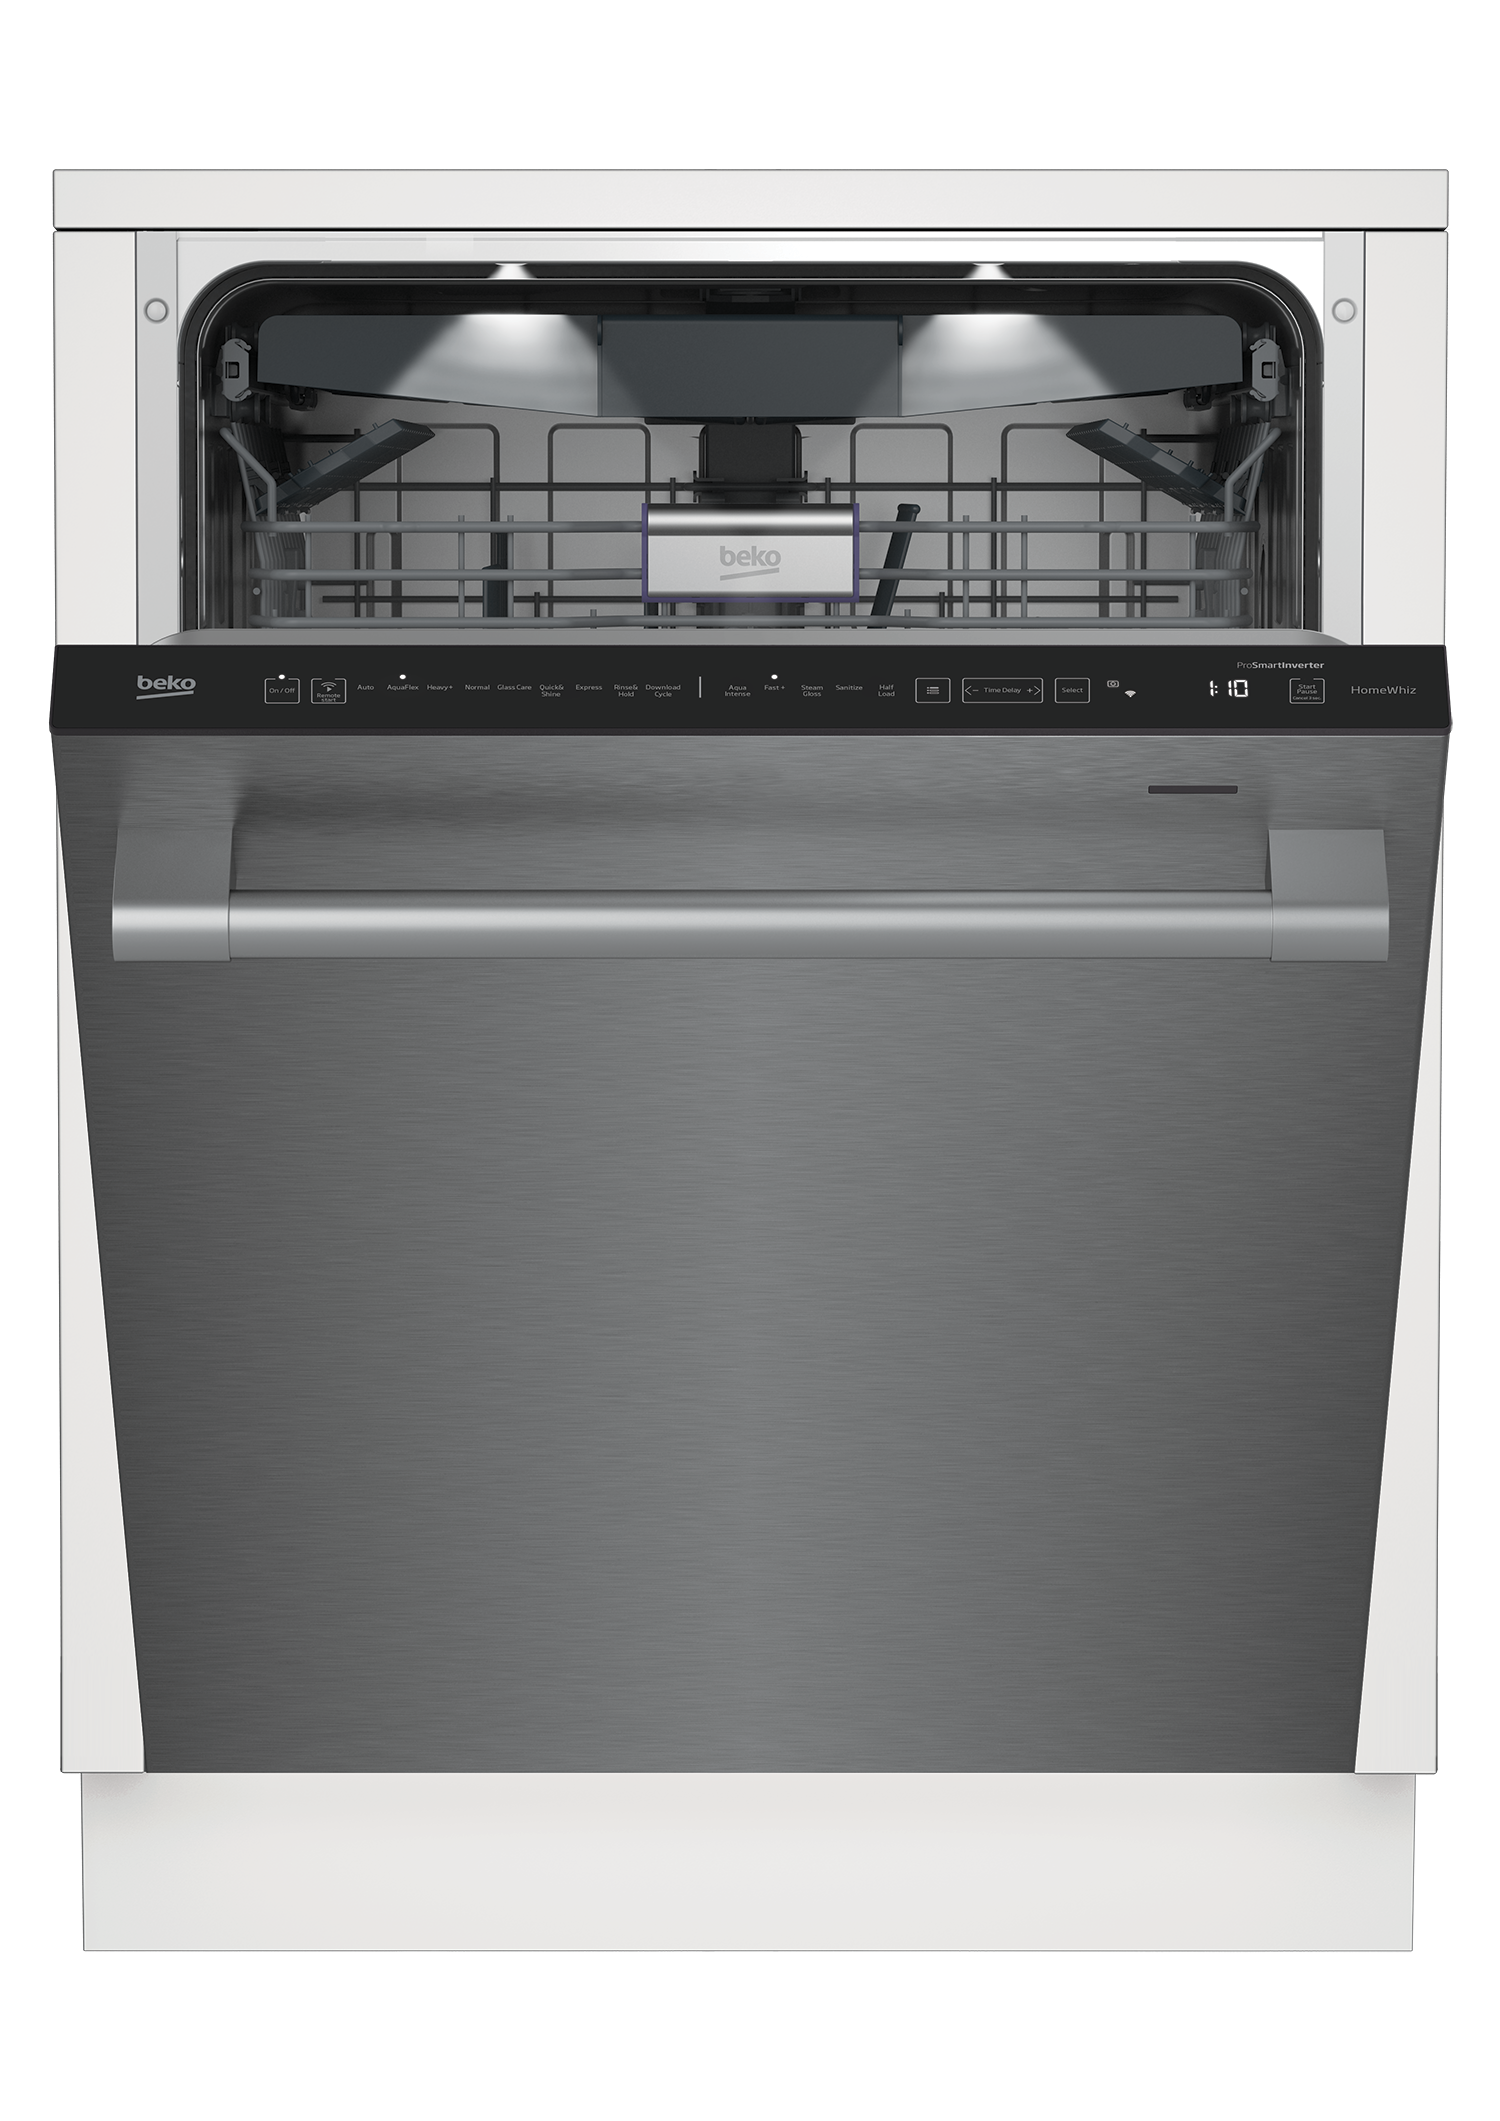 Tall Tub WiFi Connected Stainless Dishwasher, 16 place settings, 39 dBa, Top Control DDT39432X